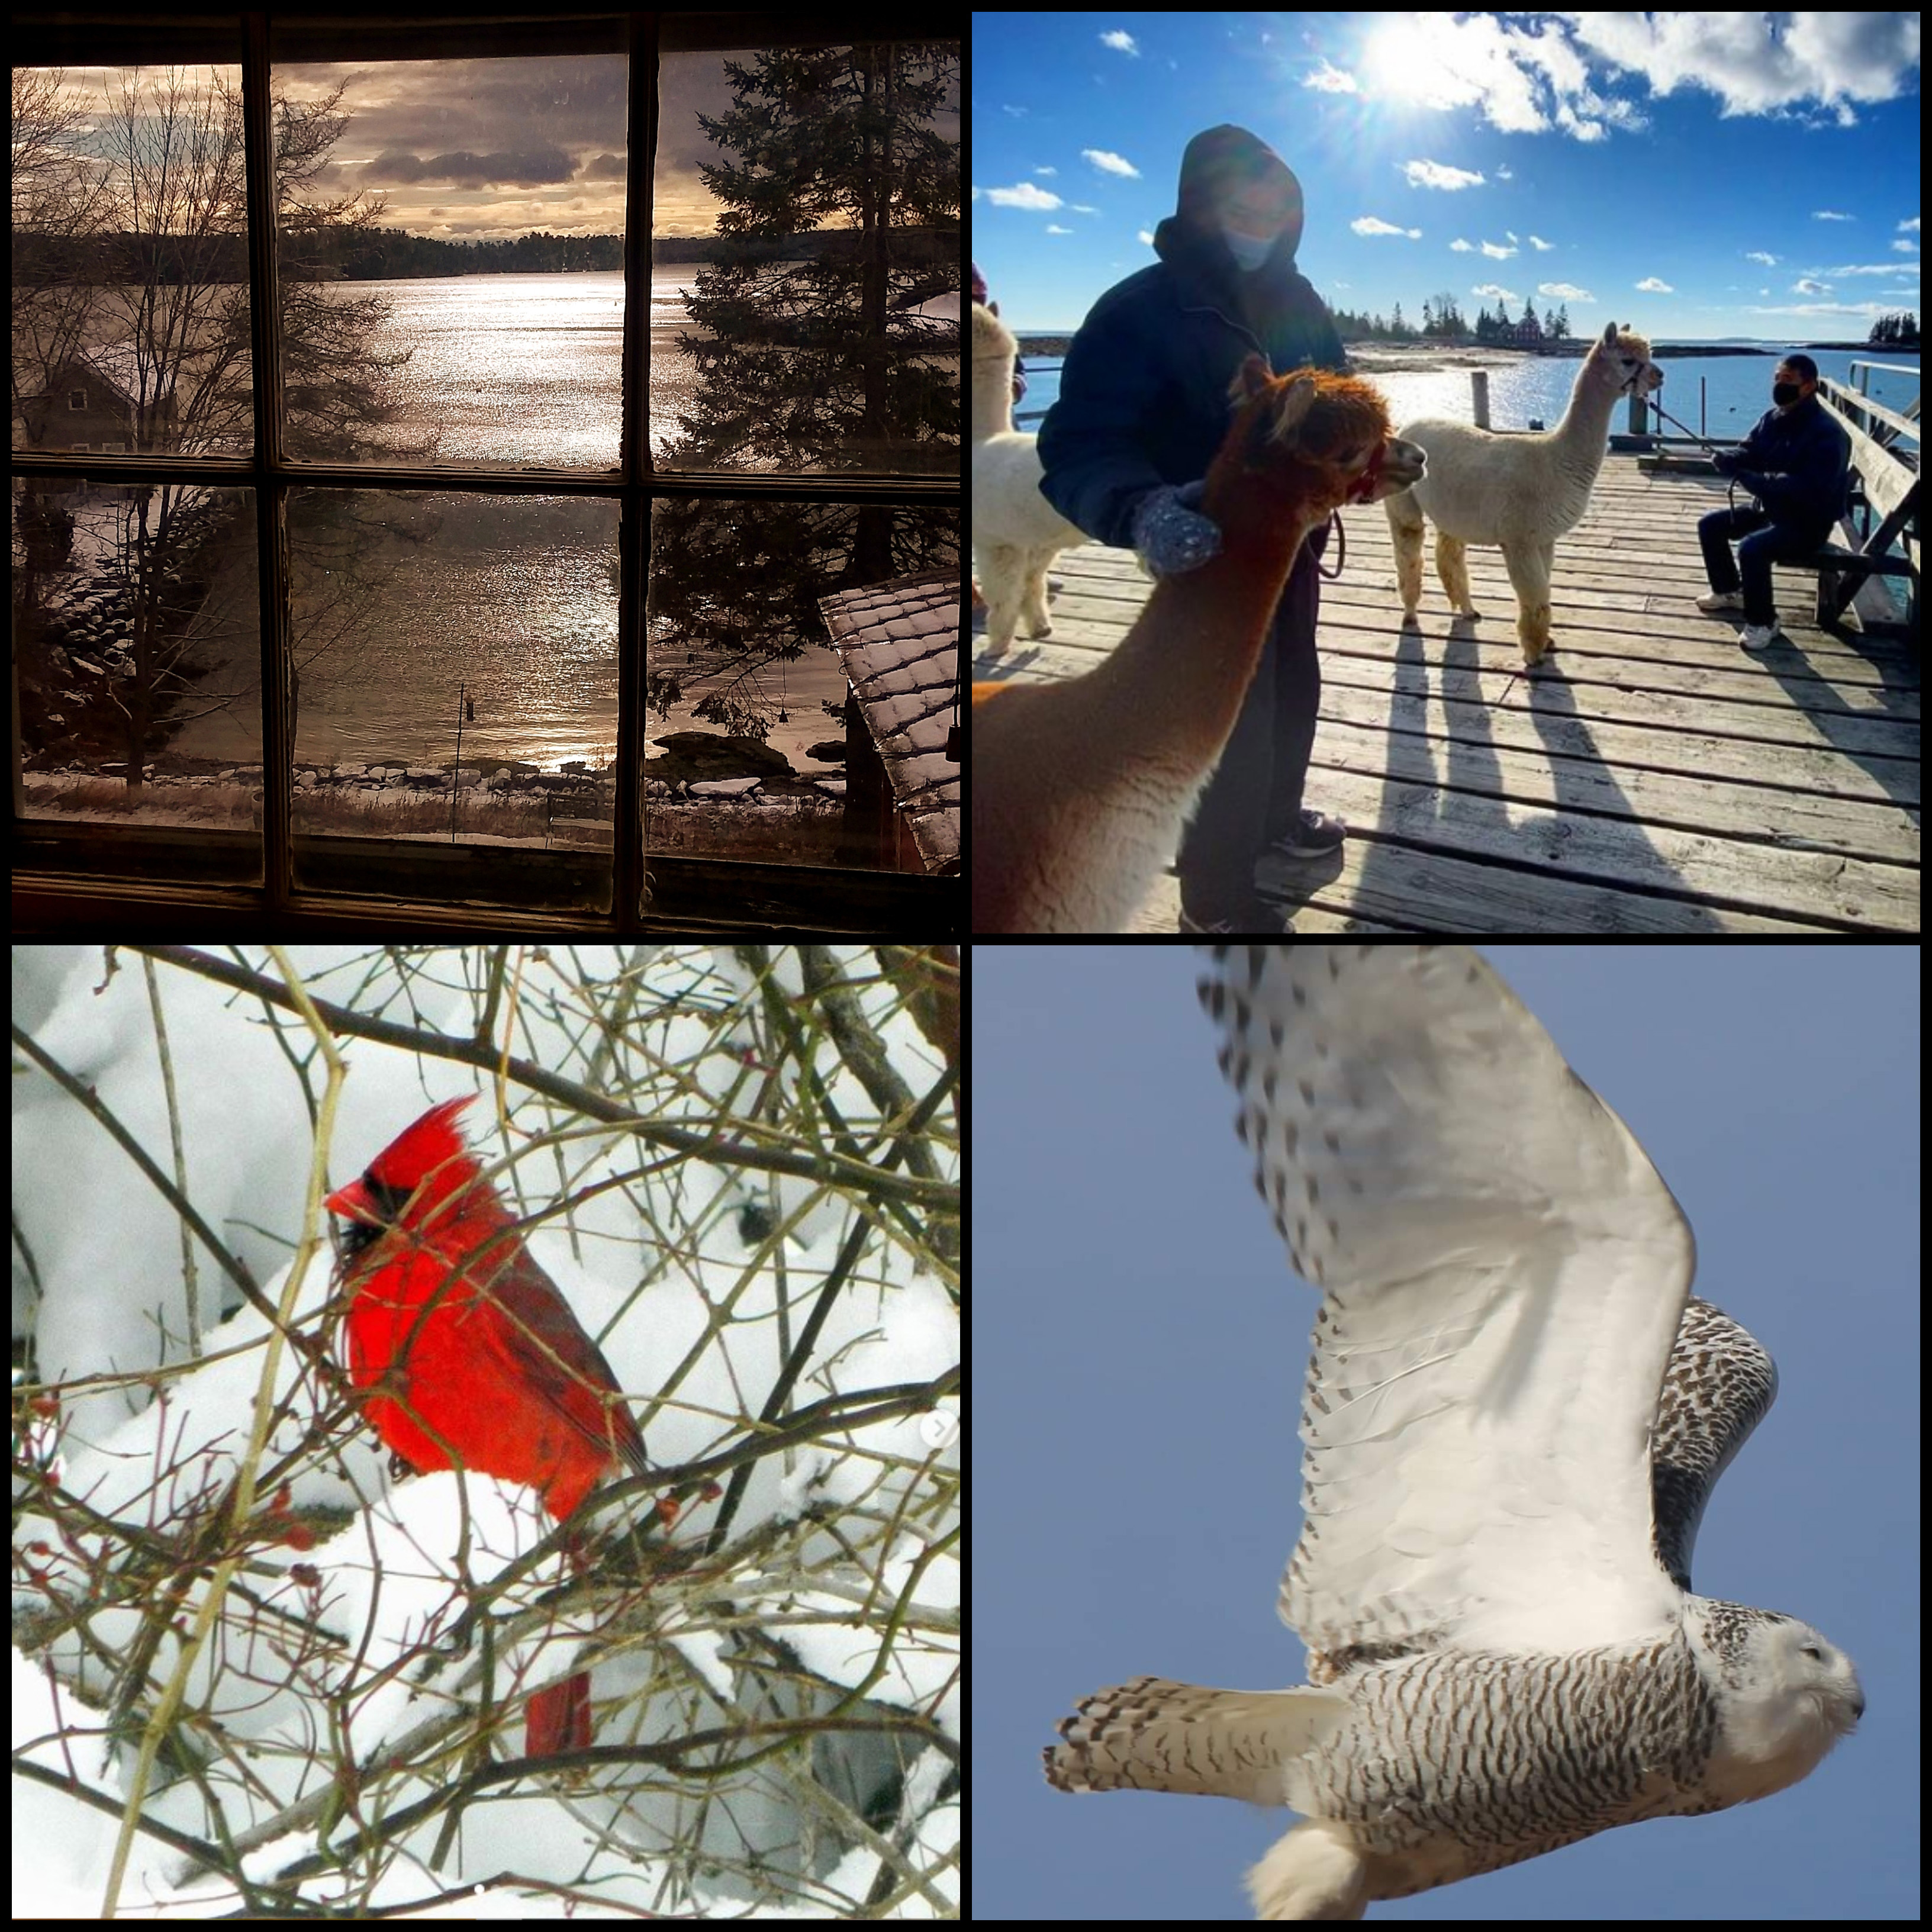 The four weekly winners of the February #LCNme365 photo contest. Voting for the monthly winner opened at noon, Wednesday, Feb. 17 and will close at 5 p.m., Monday, Feb. 22.